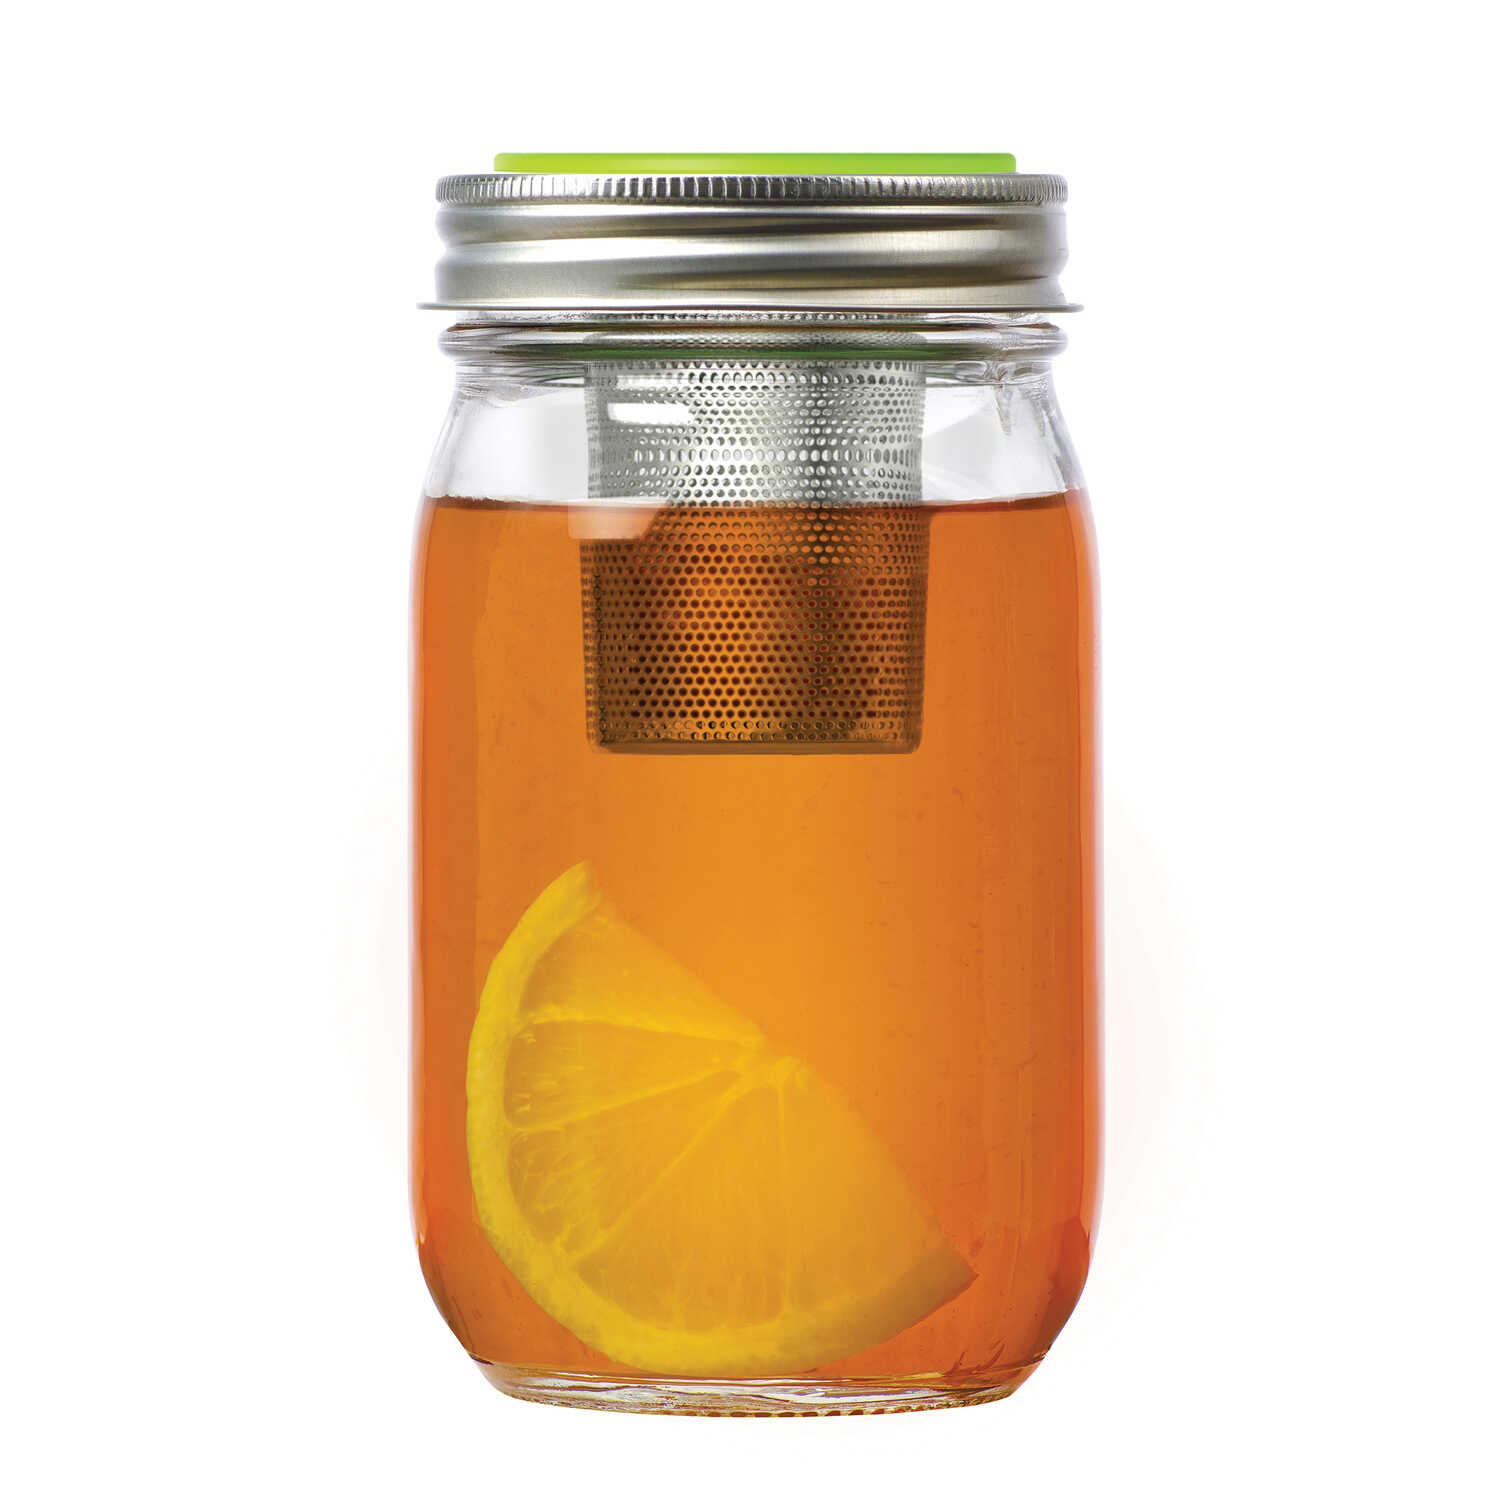 Jarware  Regular Mouth  Tea Jar Infuser  1 pk